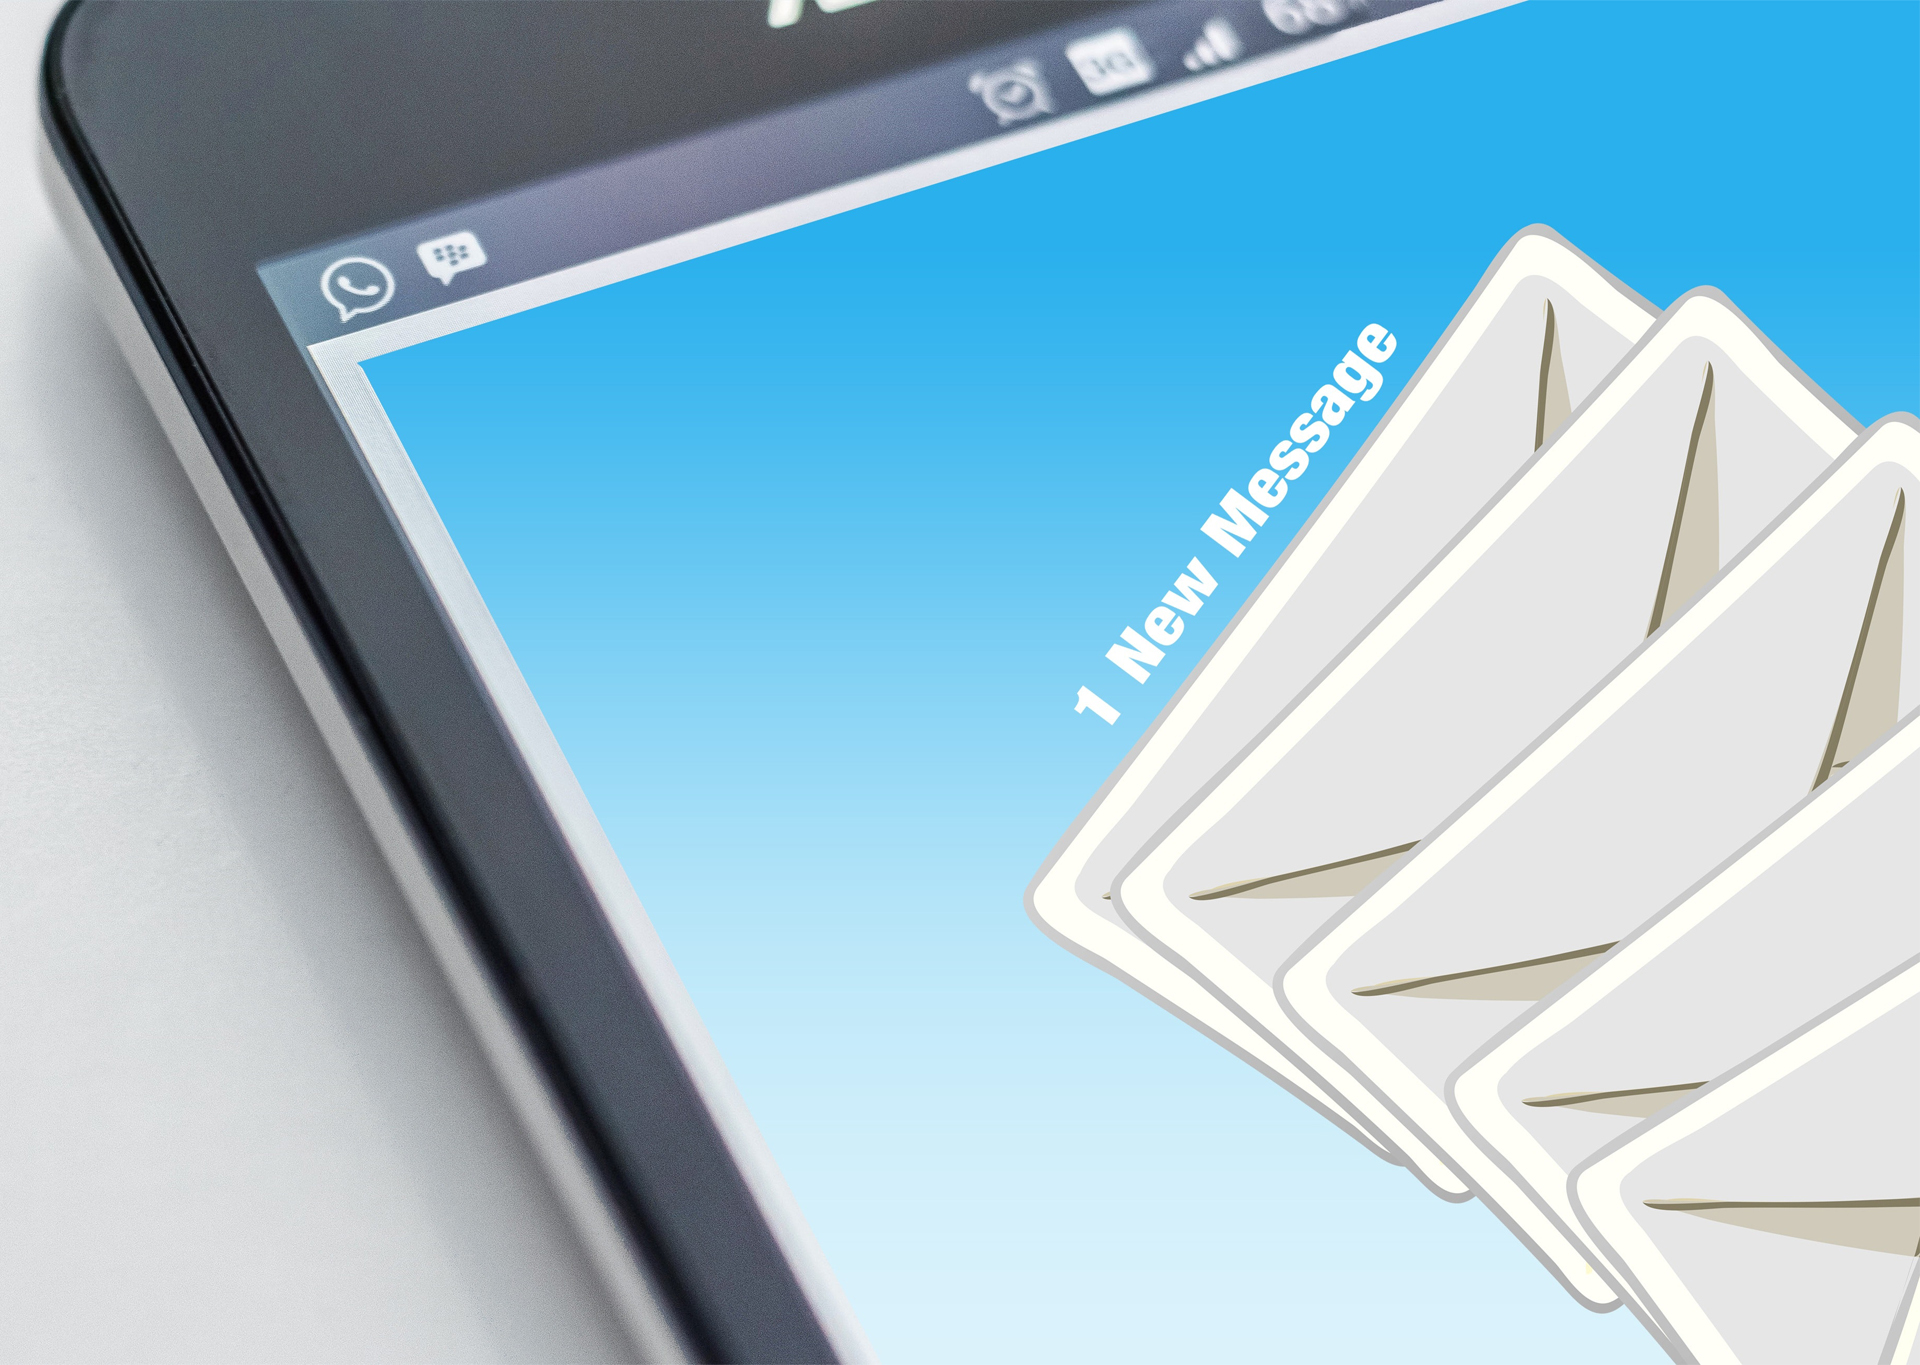 Preview of an email client with a new message notification